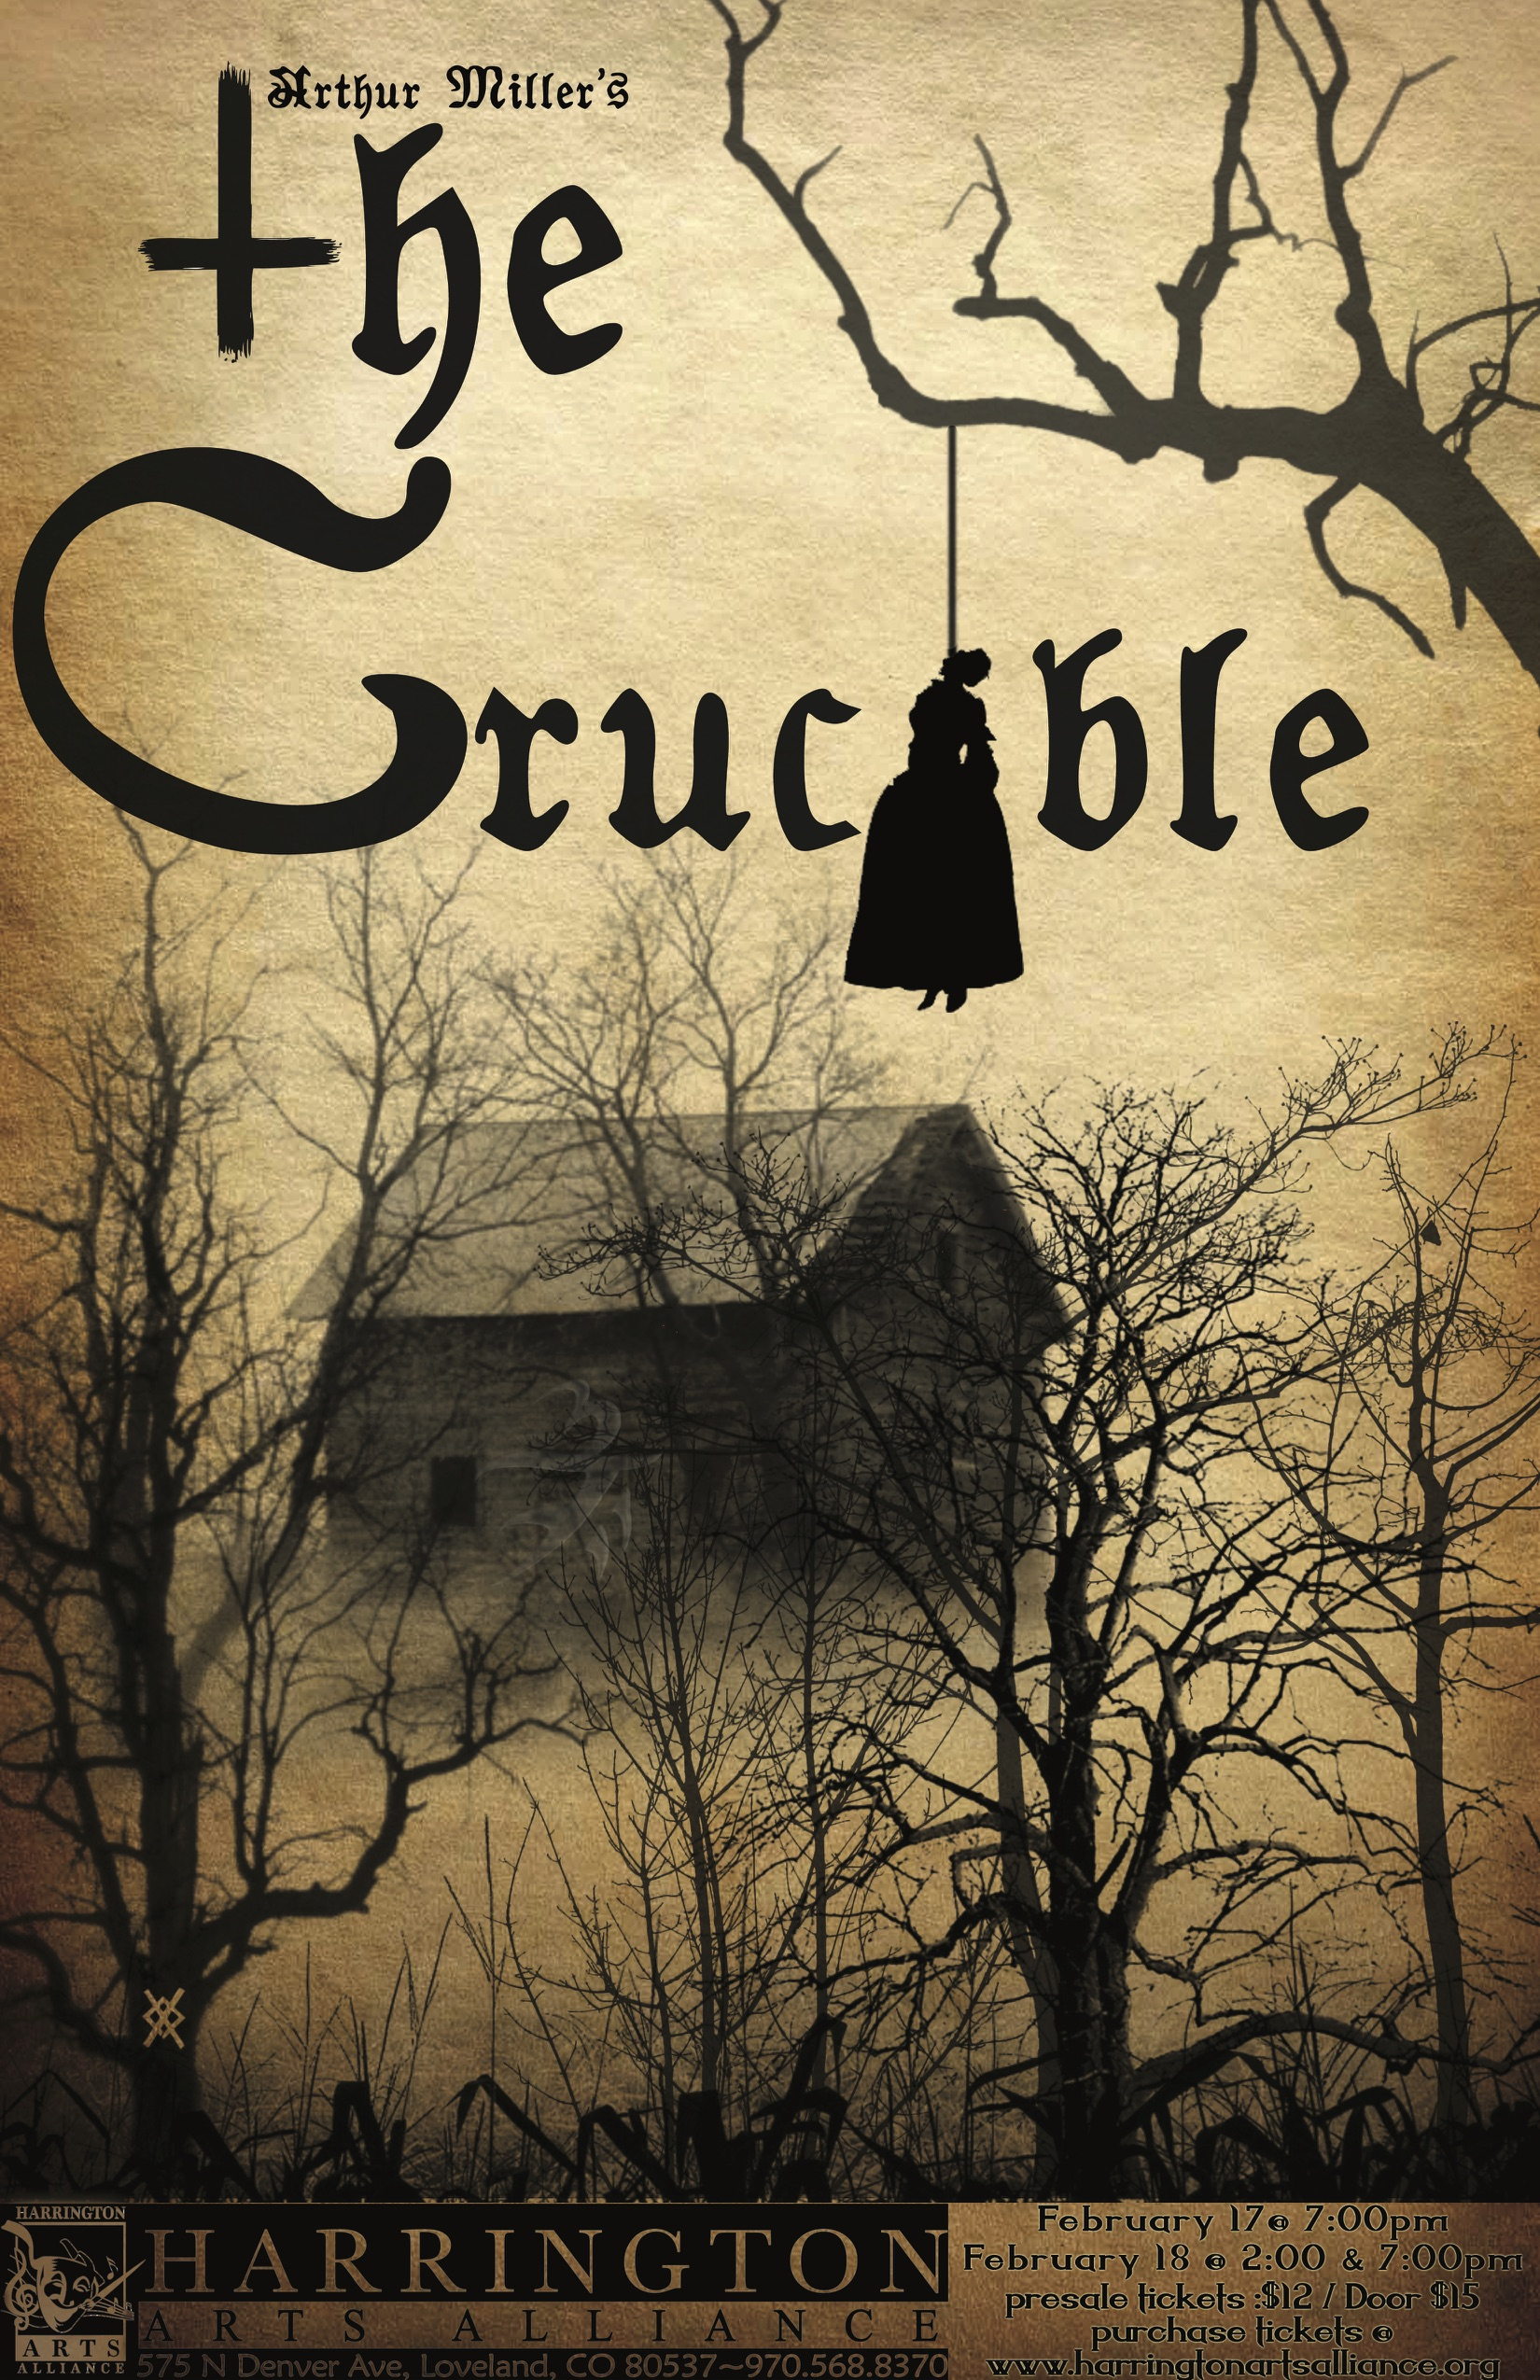 crucible single girls A crucible can refer to a severe test or trial or a metal container used for  two more of the girls who were dancing in the  john goes to meet with abigail in.